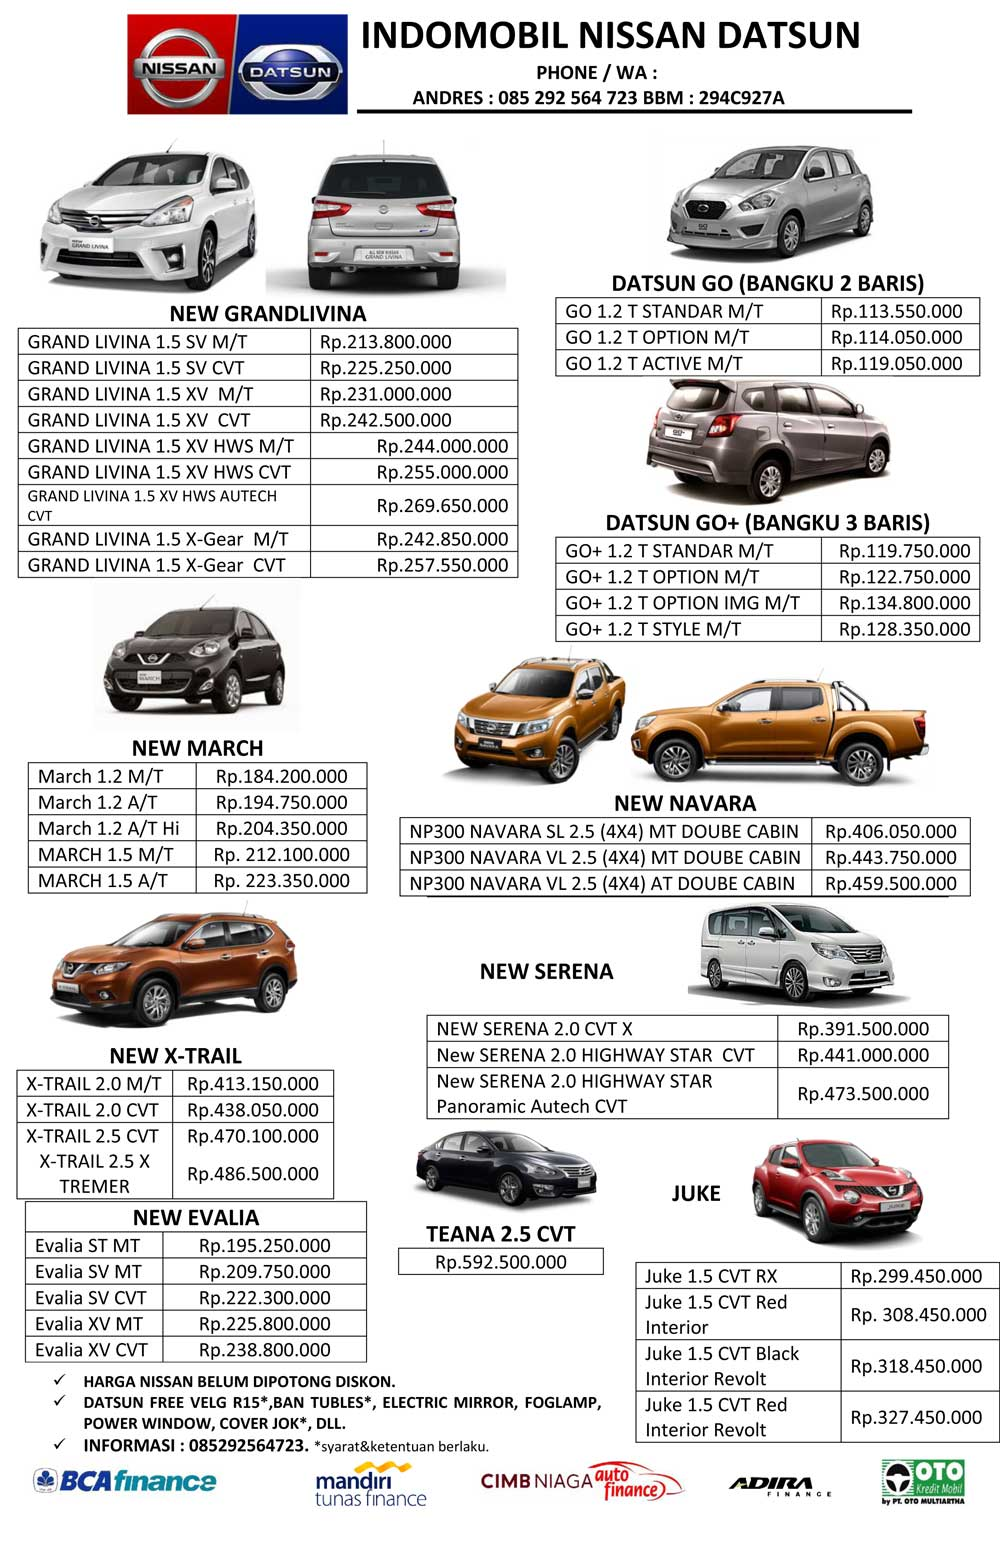 Harga Mobil Datsun 2017 By Andres